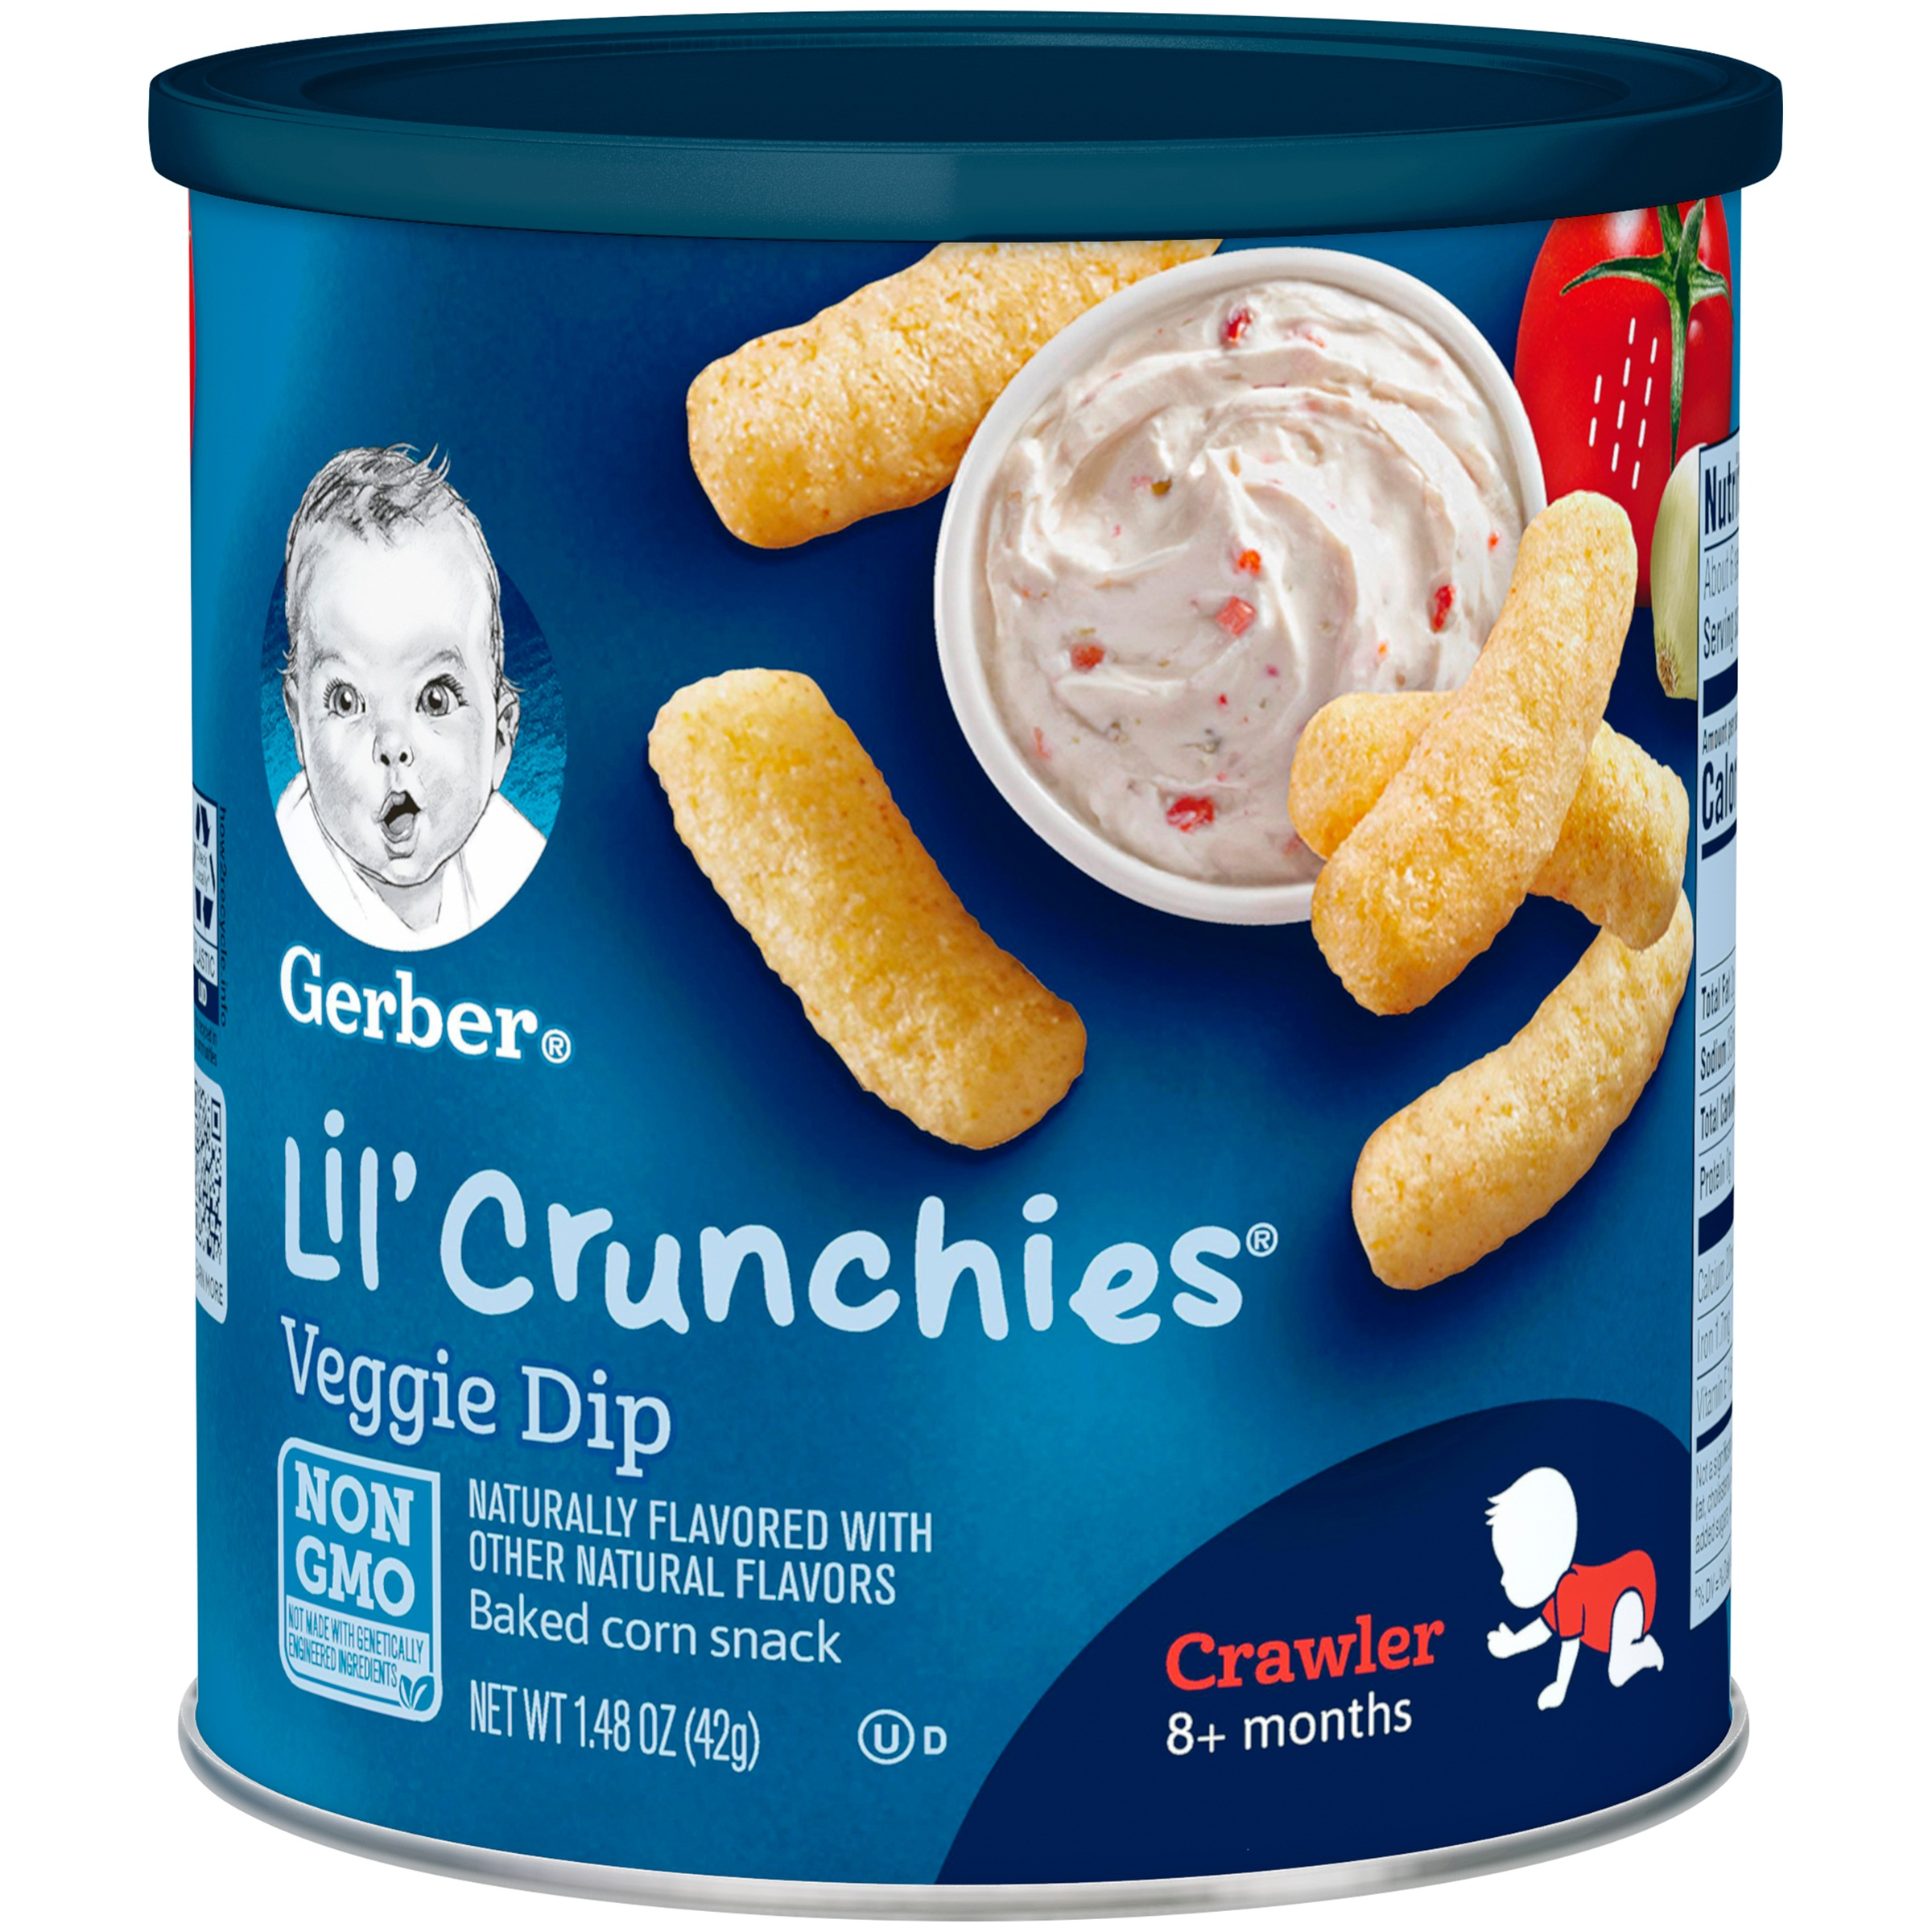 Gerber Lil' Crunchies Baked Whole Grain Corn Snack, Veggie Dip, 1.48 oz. Canister